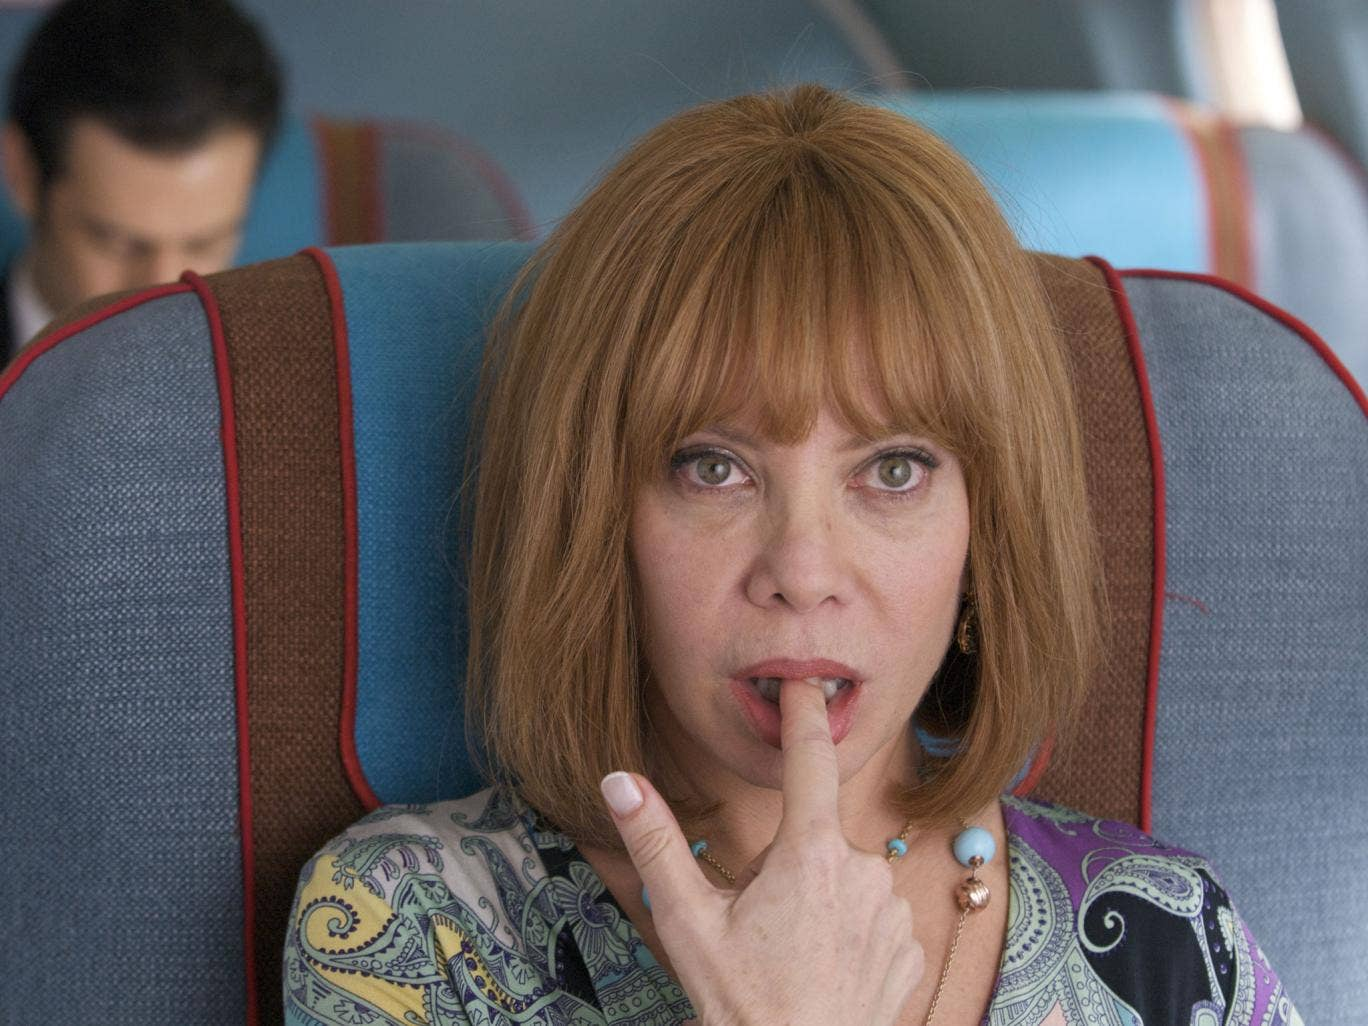 Finger-licking dud: Cecilia Roth in the disappointing 'I'm So Excited!'